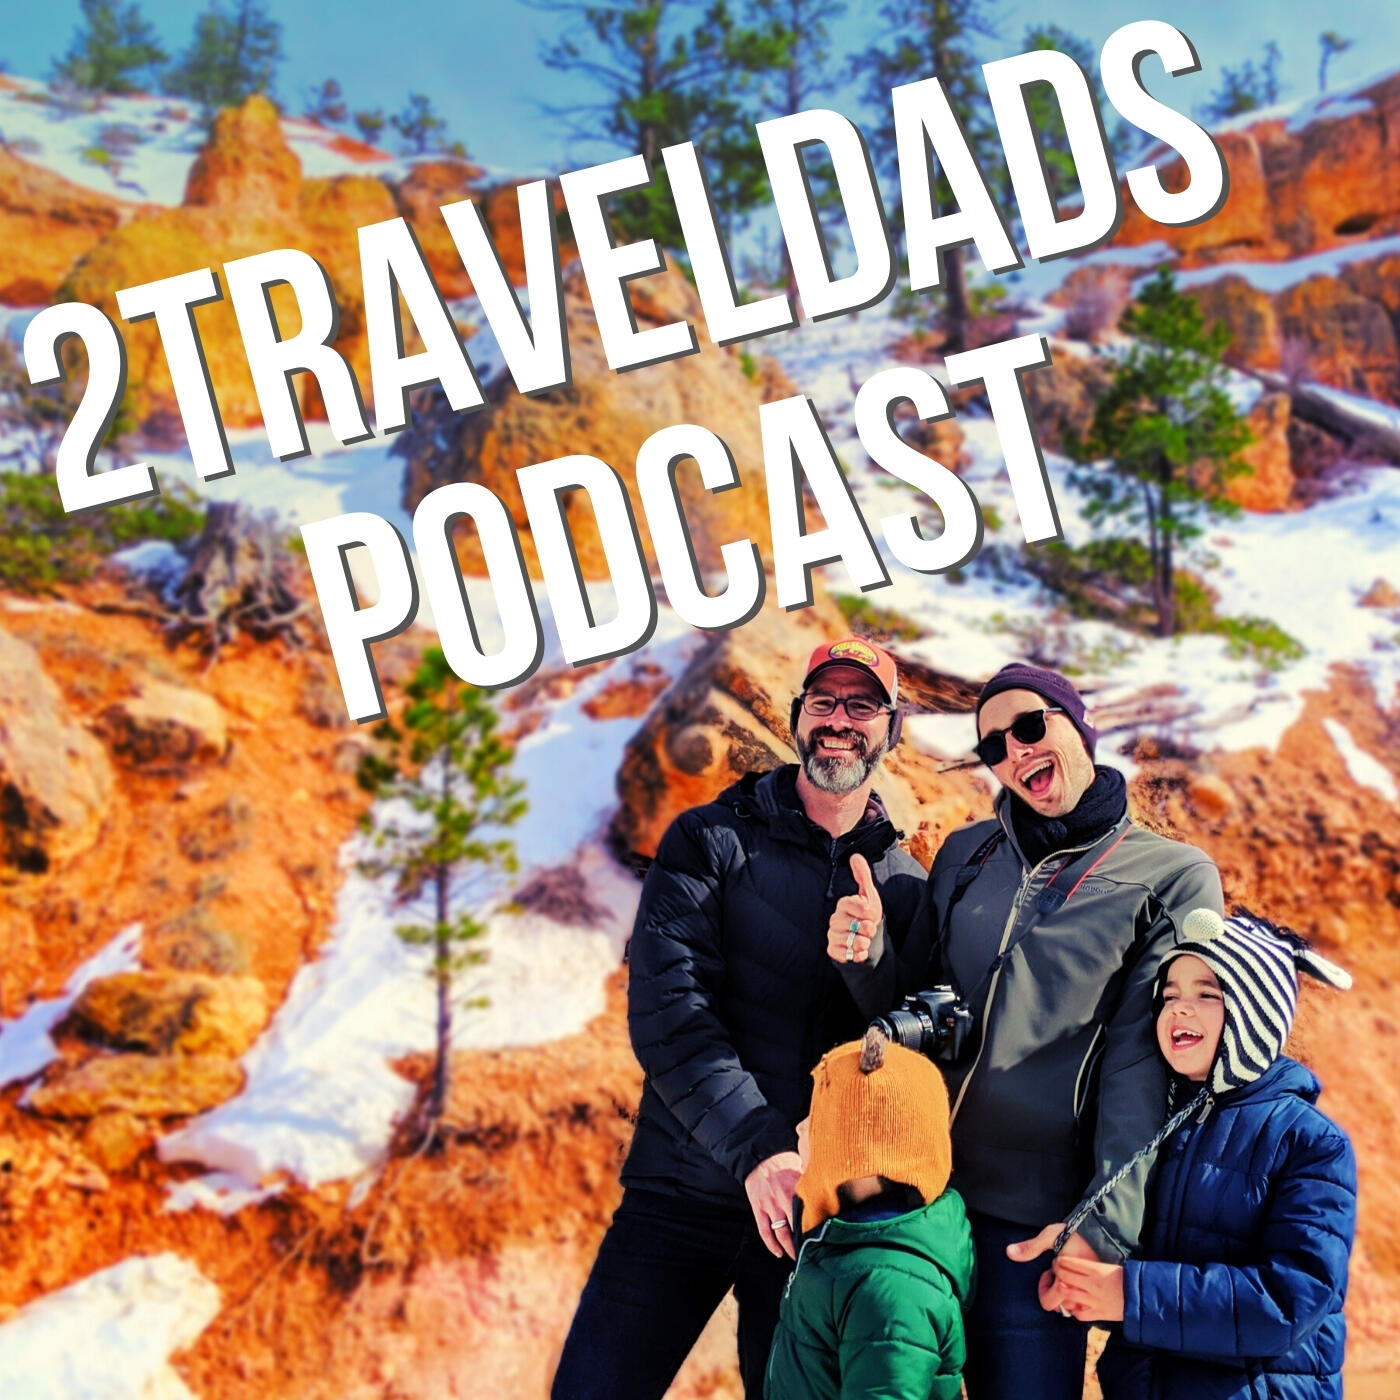 2TravelDads Podcast